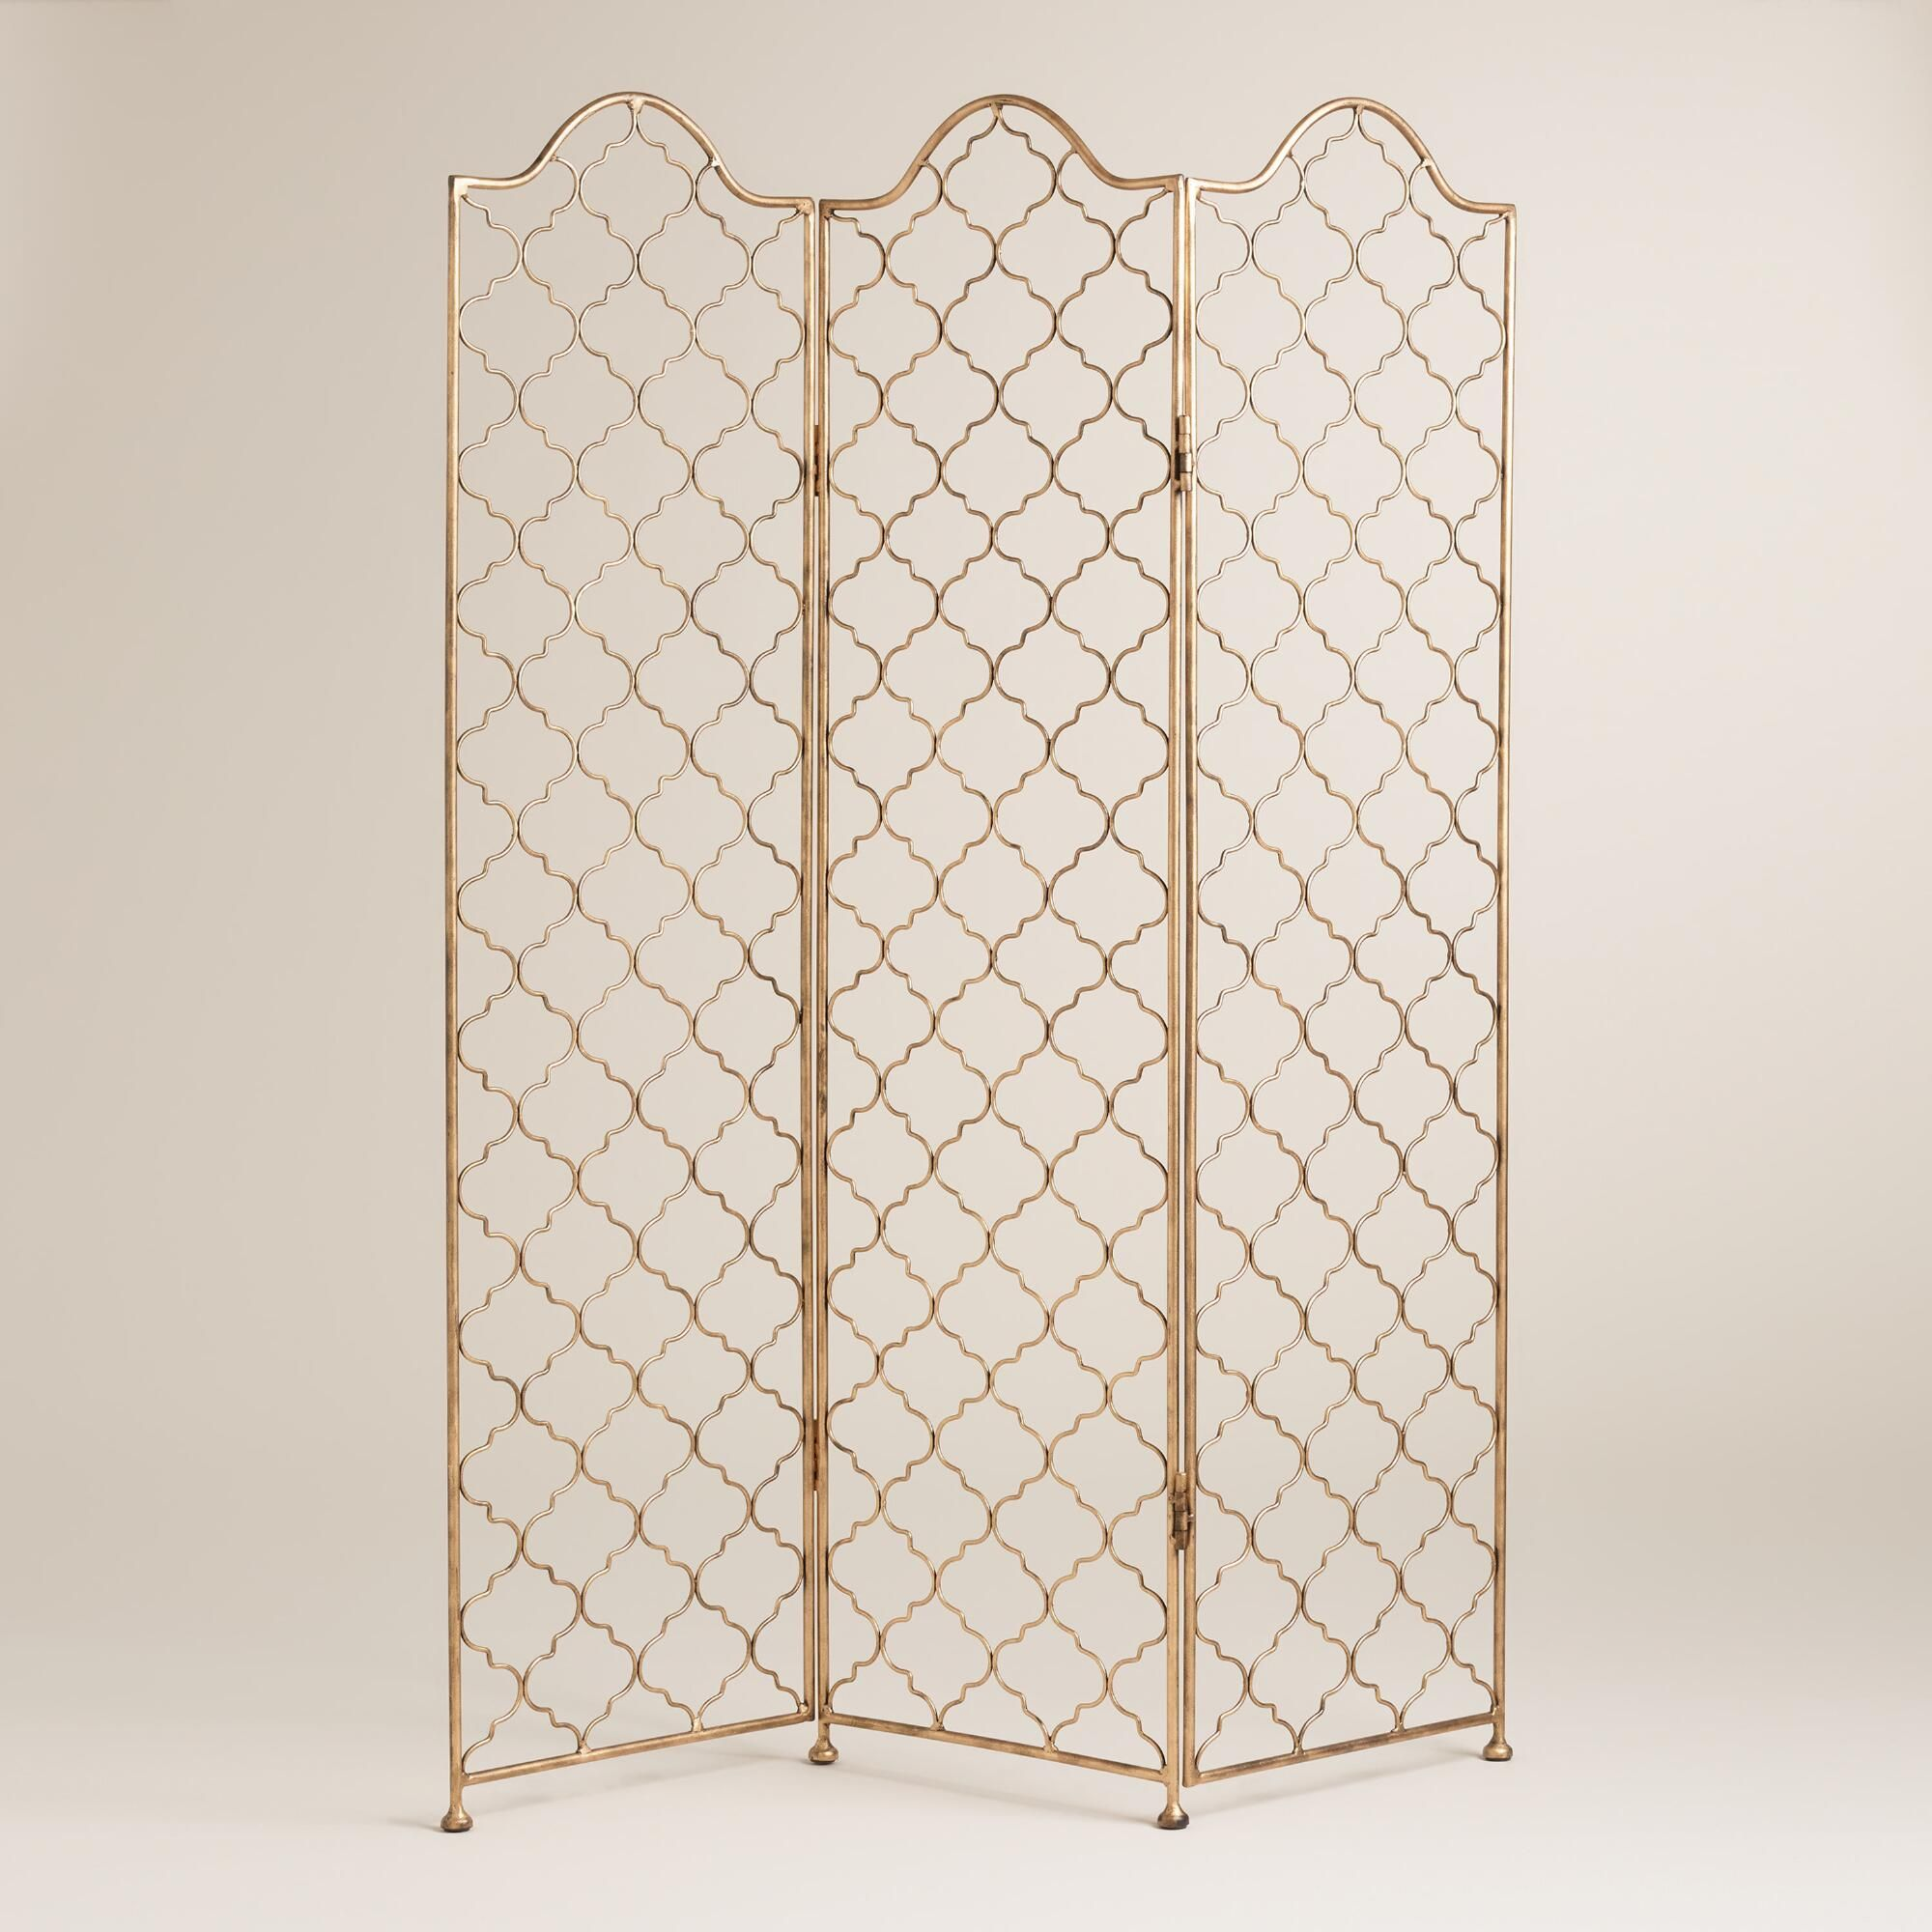 an eclectic room divider our bohochic screen features three  - an eclectic room divider our bohochic screen features three hinged panelsfor versatile